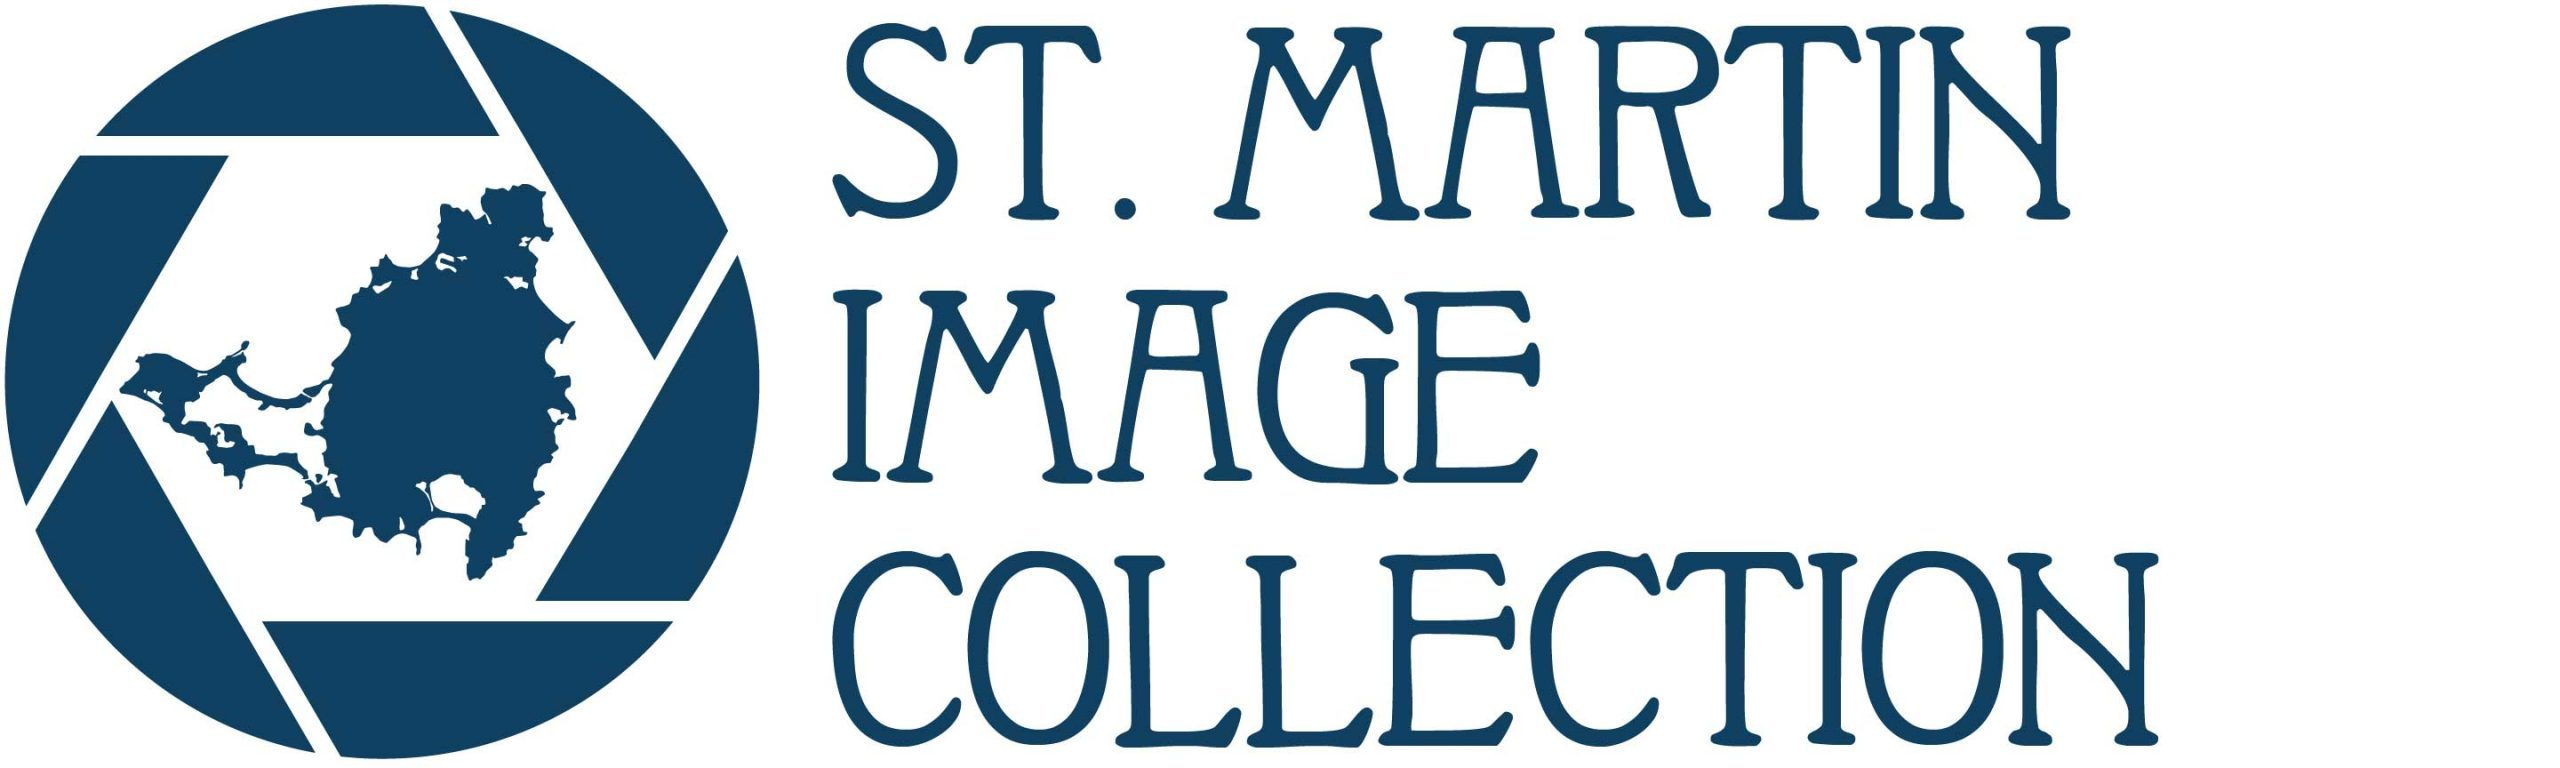 St. Martin Image Collection